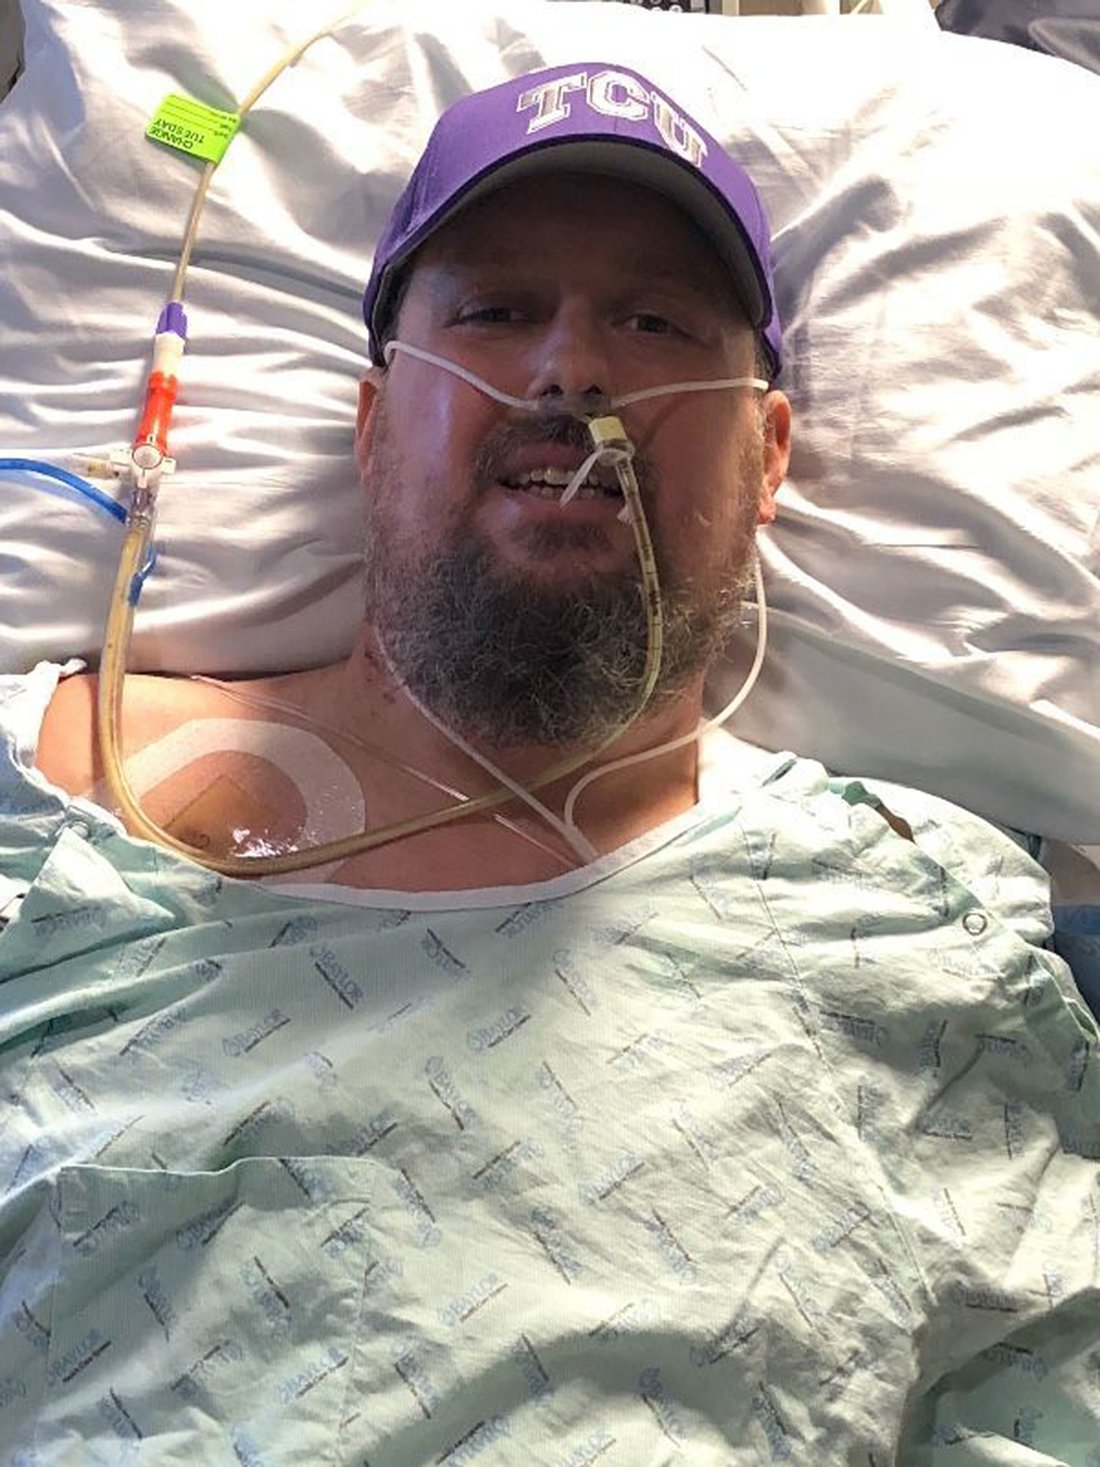 Texas Father Loses Both Feet and 9 Fingers After Complications From the Flu